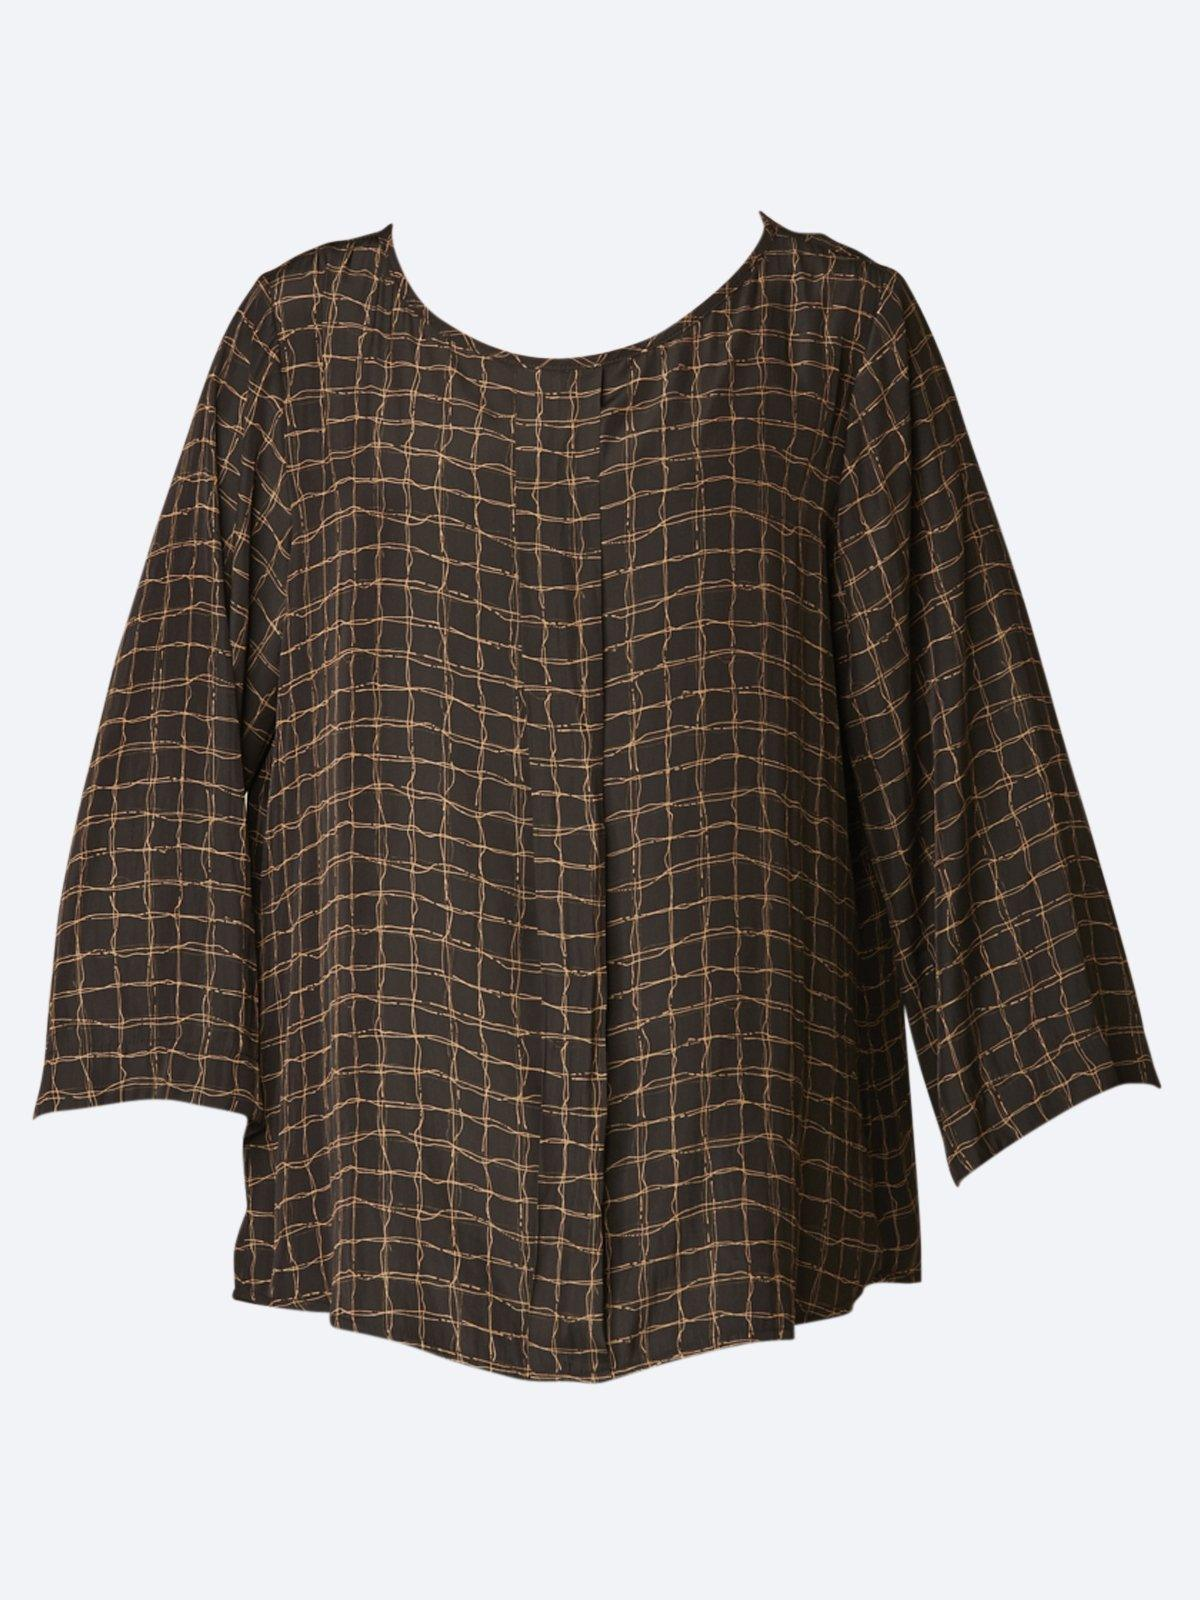 MELA PURDIE PLEAT CHECK TOP-Tops-MELA PURDIE-ENNI